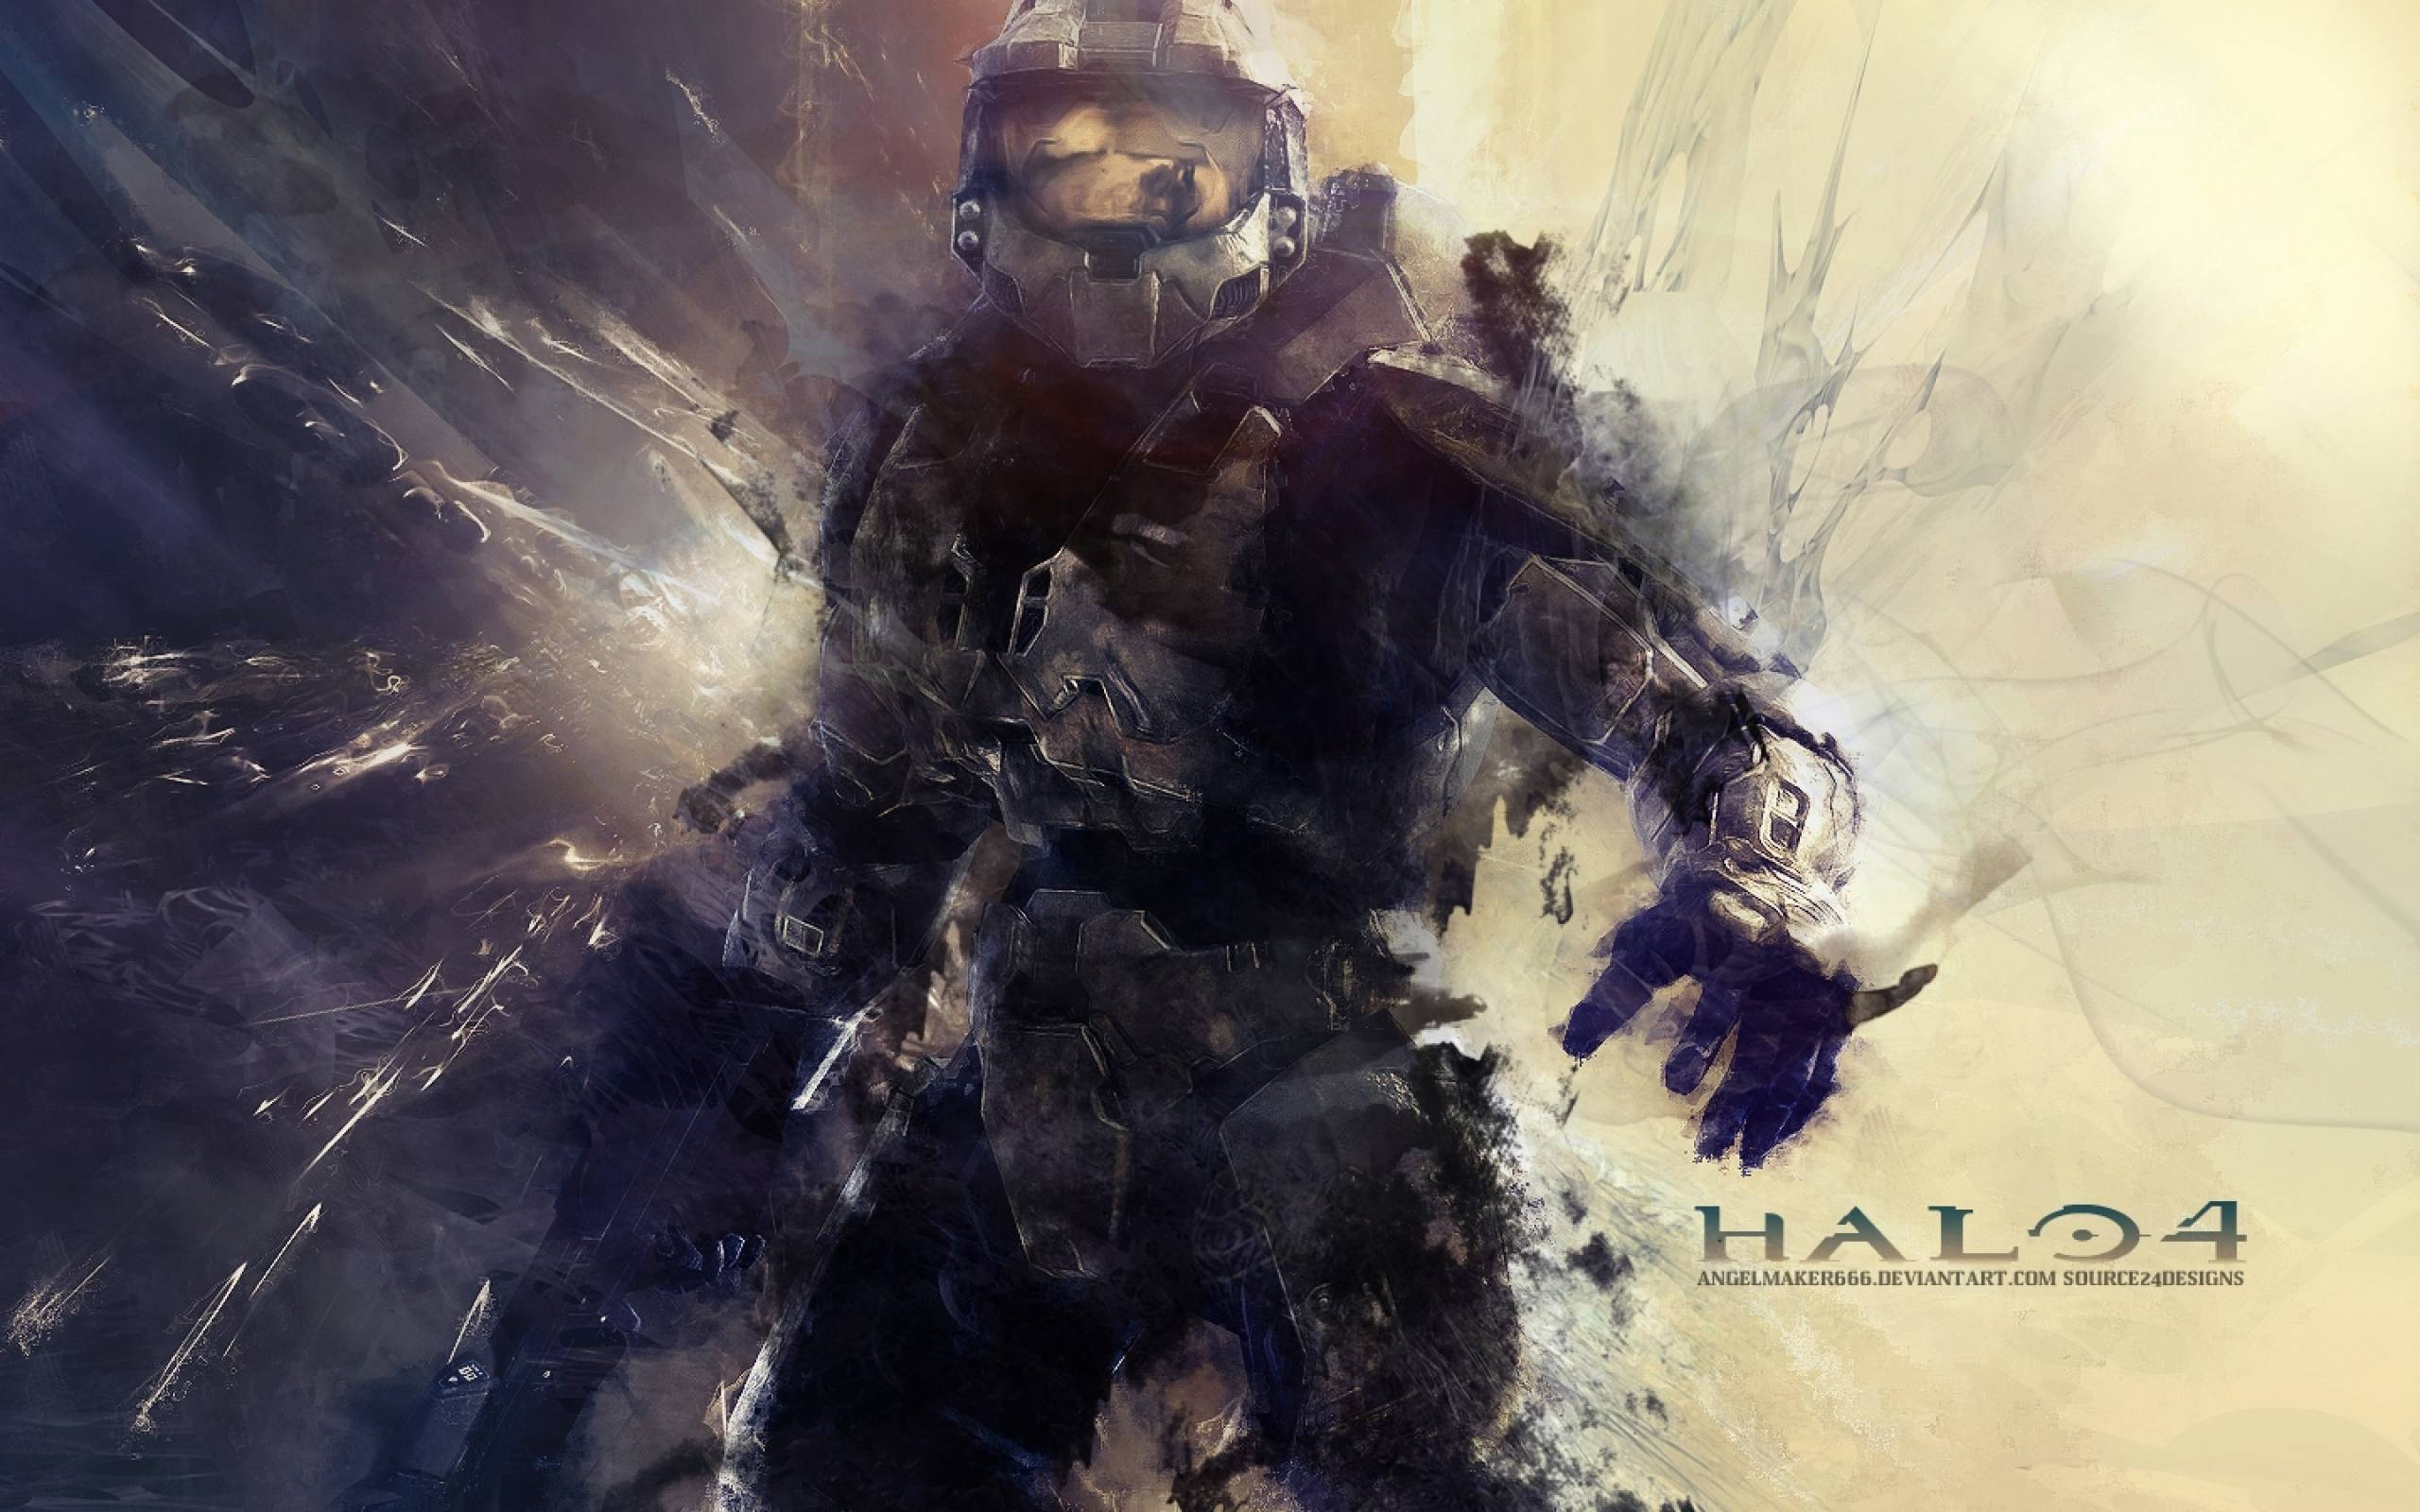 wallpaper free game halo - photo #23